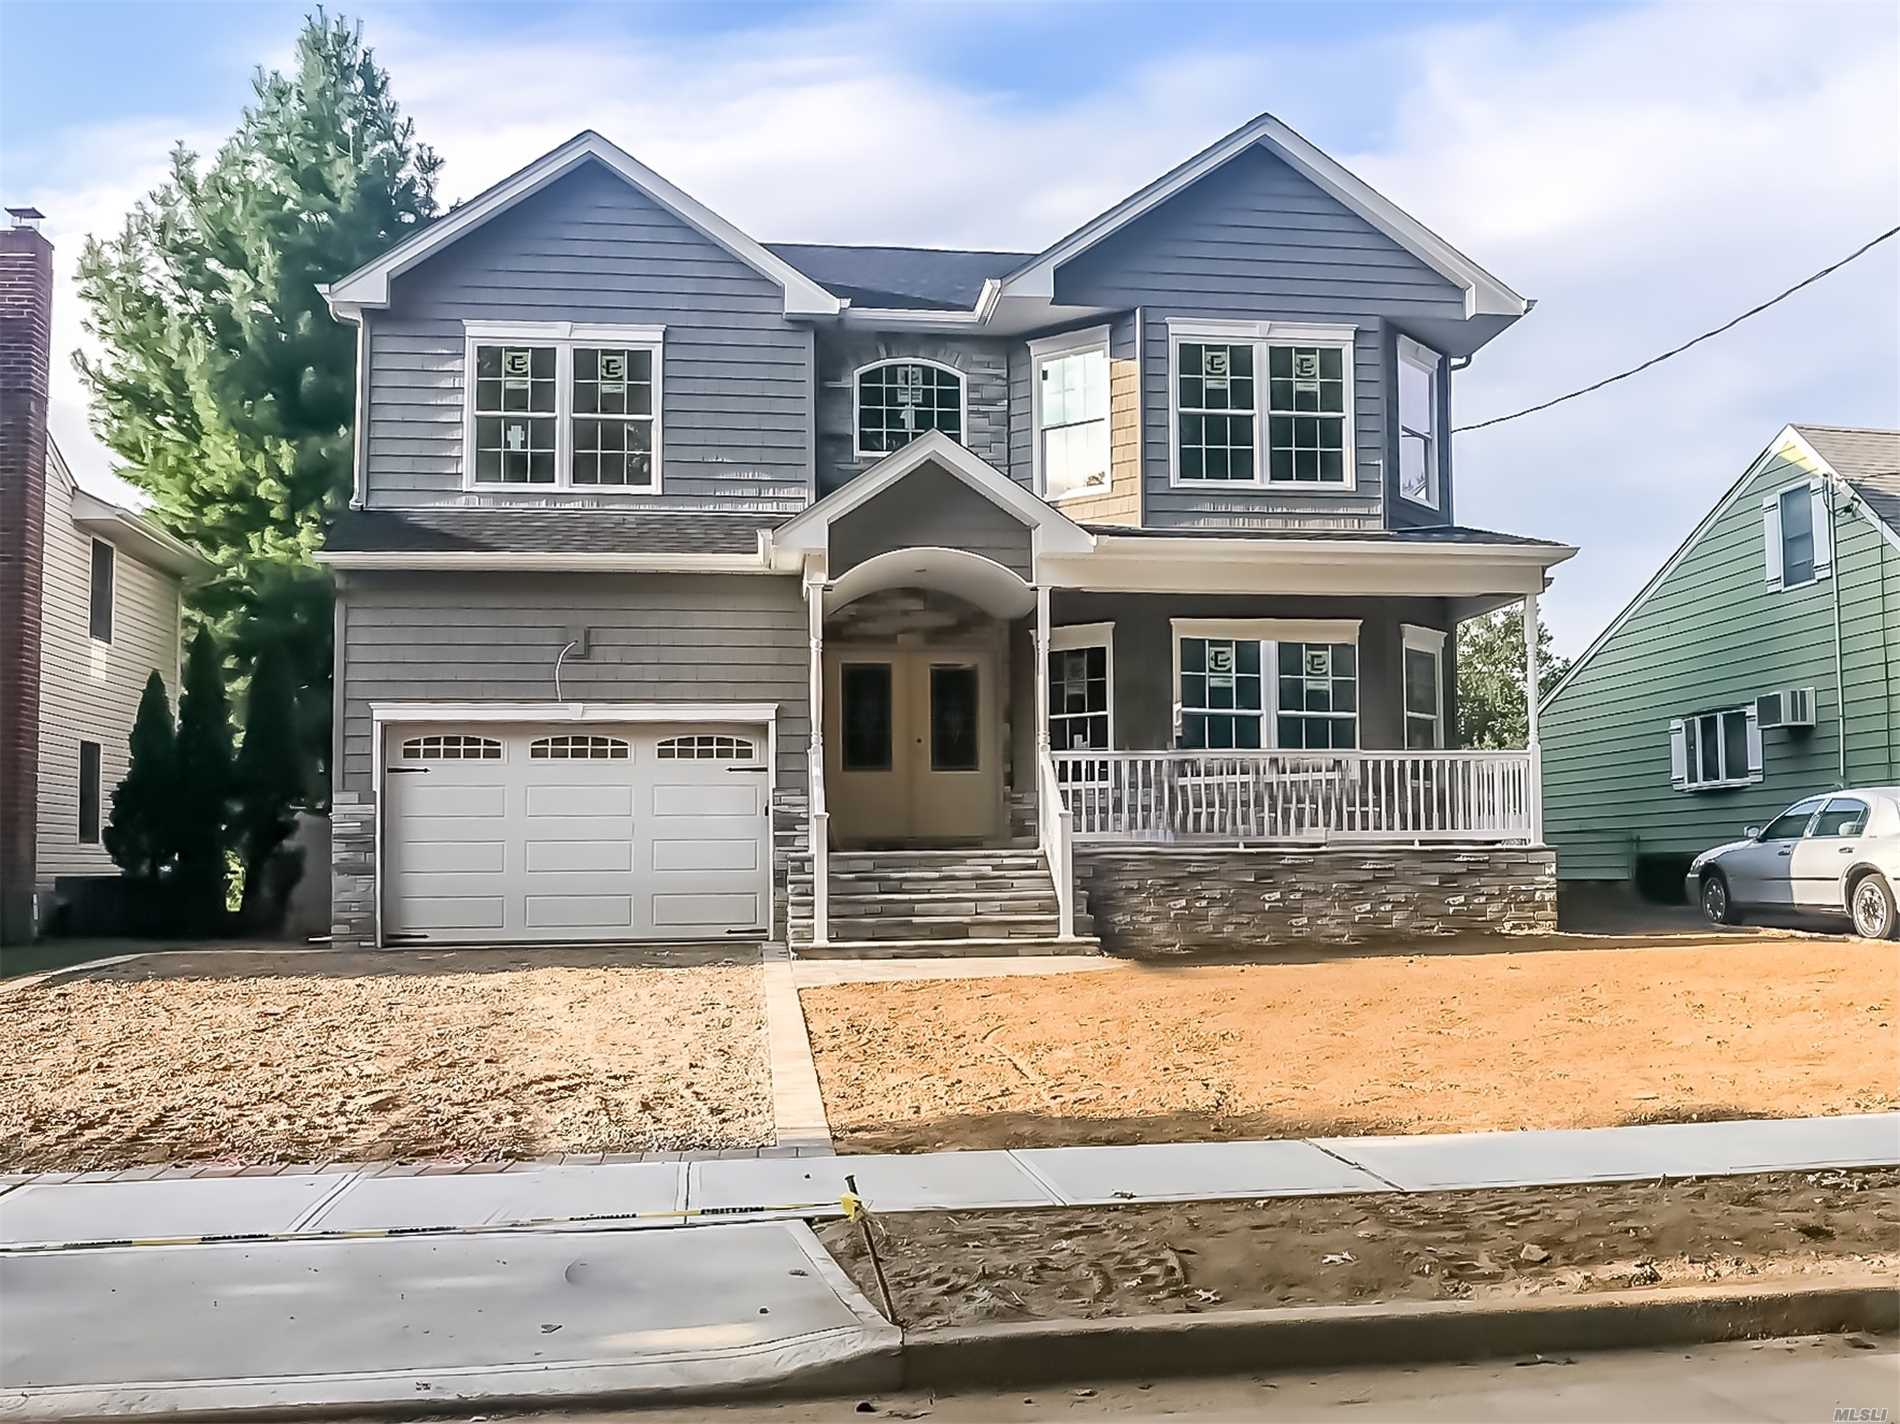 Brand New Custom Colonial To Be Built In Desirable Wantagh Woods.Approx 3500 Sq Ft With Open Floor Plan Expertly Designed & Finished With The Utmost Quality Craftsmanship.Designer Kit & Baths. Ss Appl, Trim Work Throughout.1st Flr Lvrm, Fdr, Eik, Fmrm W/Fplc, 2nd Flr, Master Ste, 3 Add'l Br's, Fbth, Laundry Rm. Photos Are Of A Similar Model Home Showing Contractors Craftsmanship.